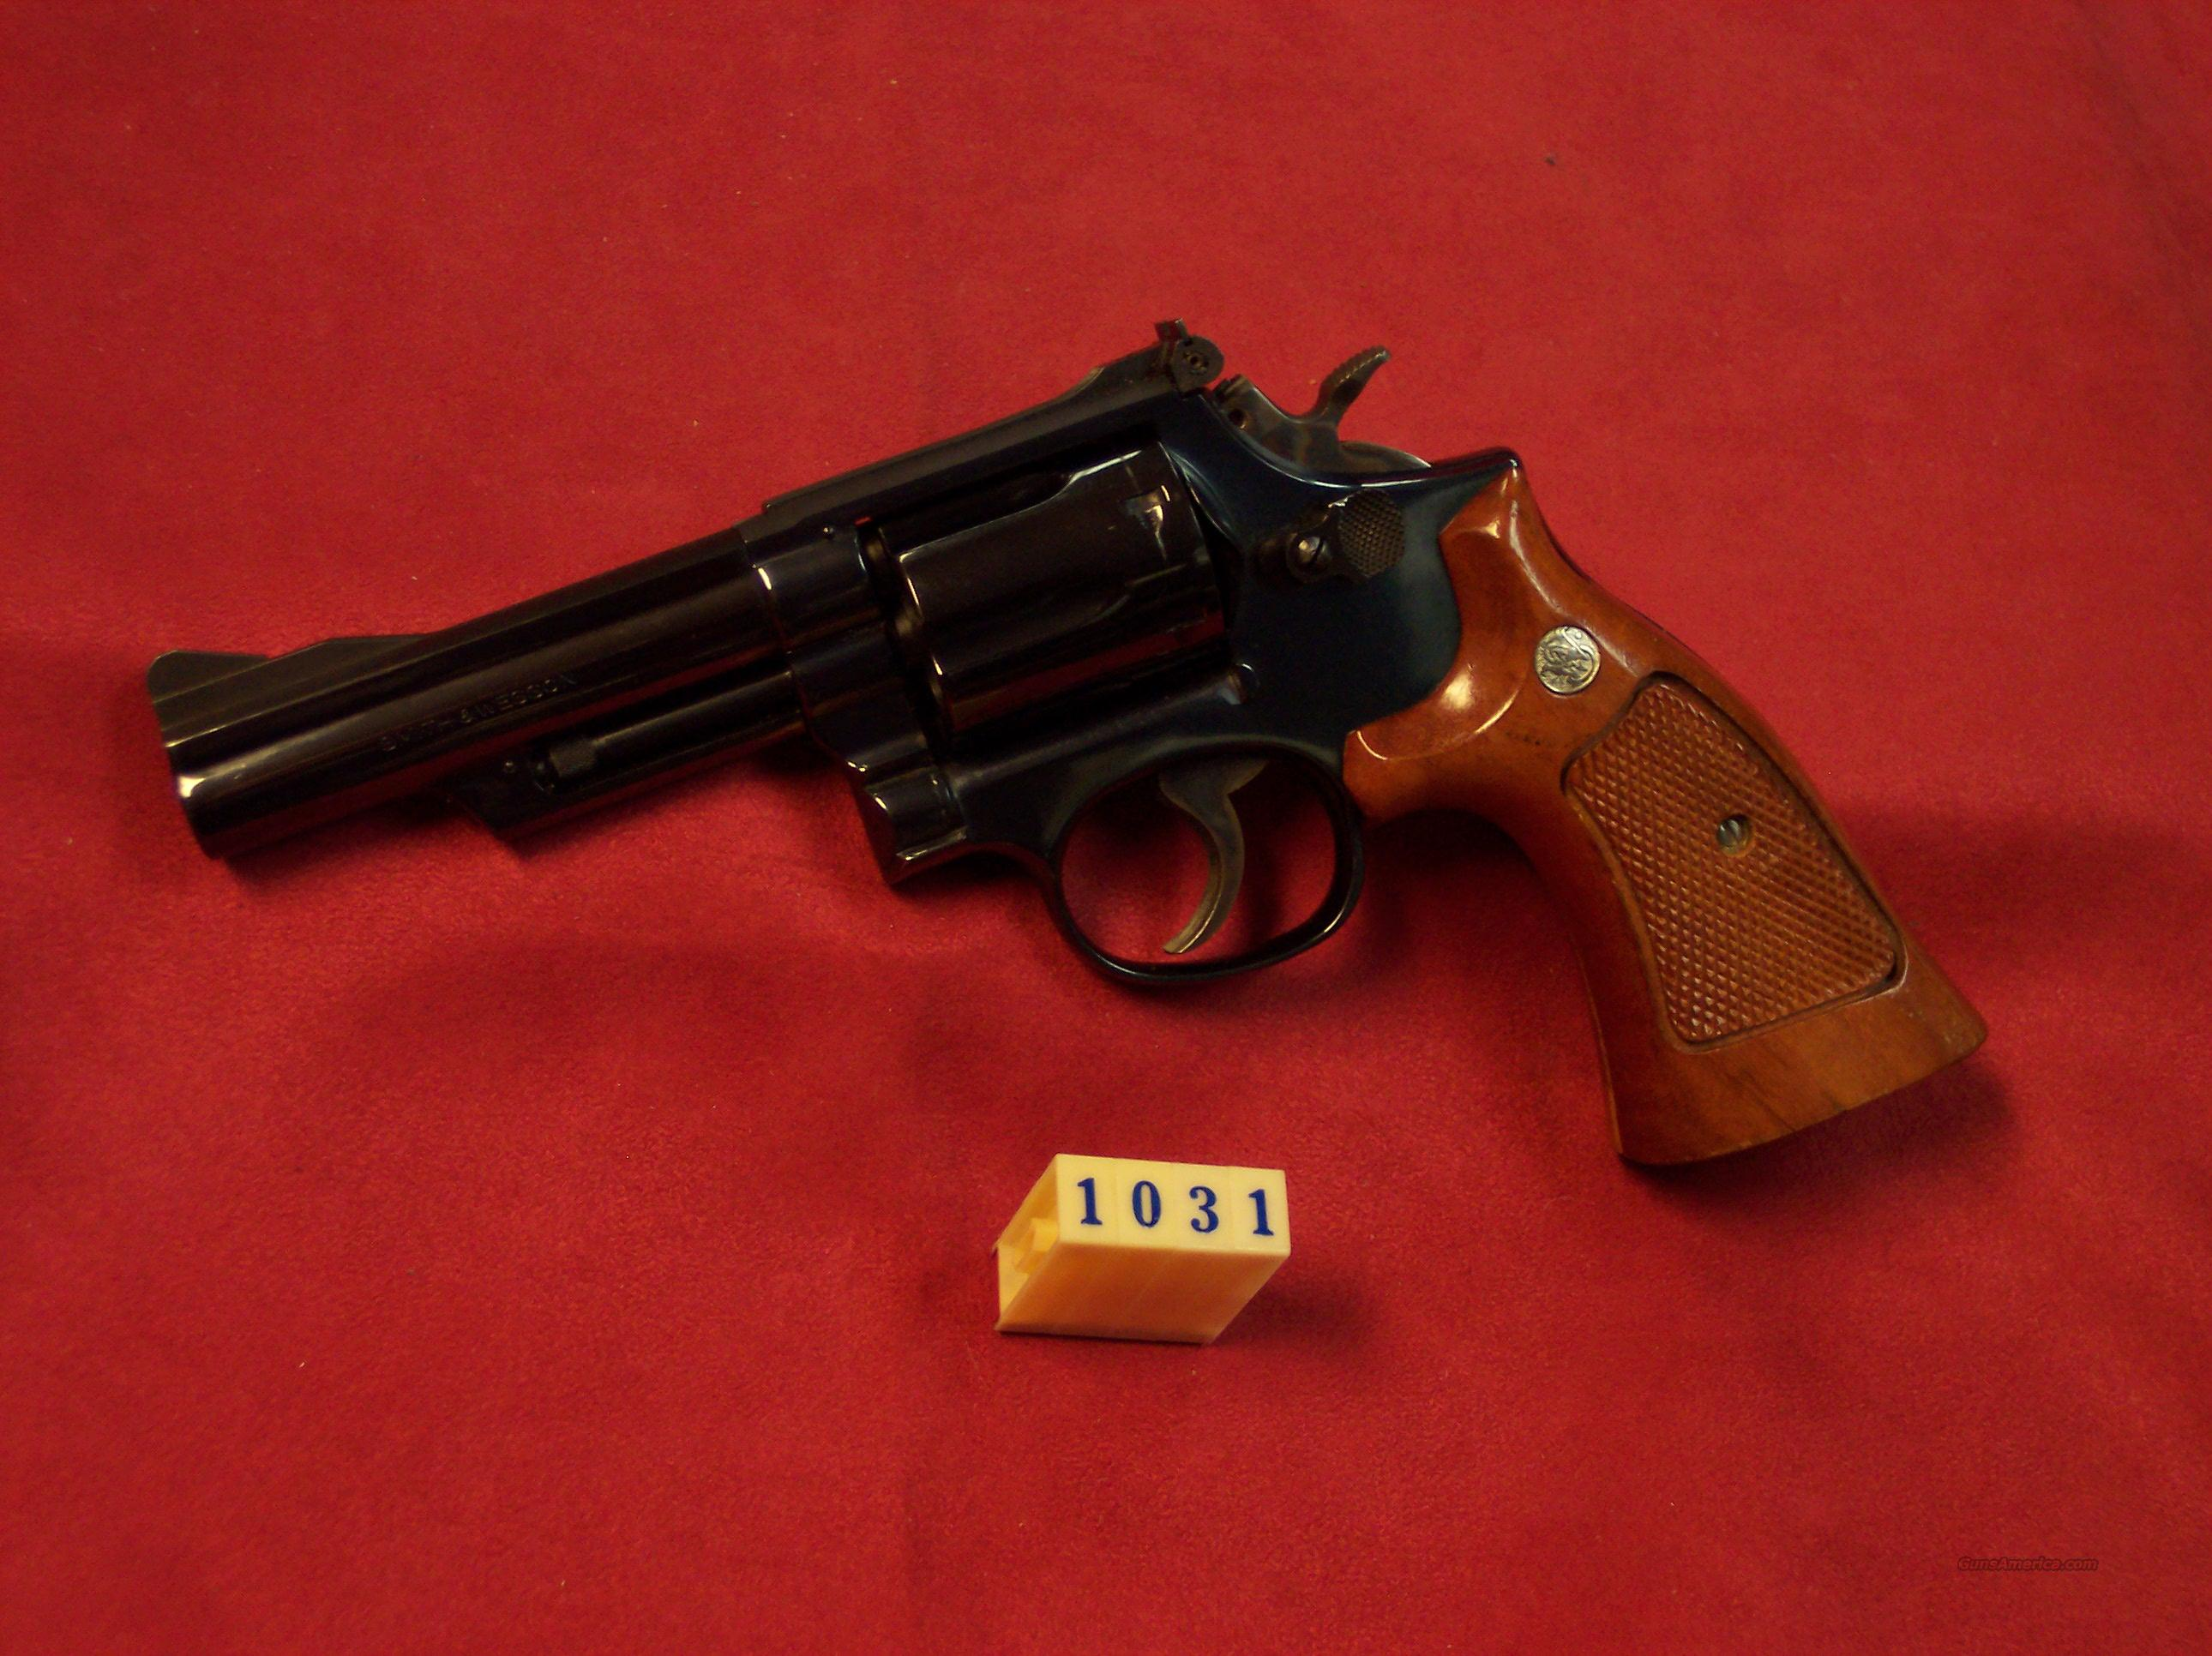 Smith & Wesson model 19-4 .357 Magnum  Guns > Pistols > Smith & Wesson Revolvers > Full Frame Revolver